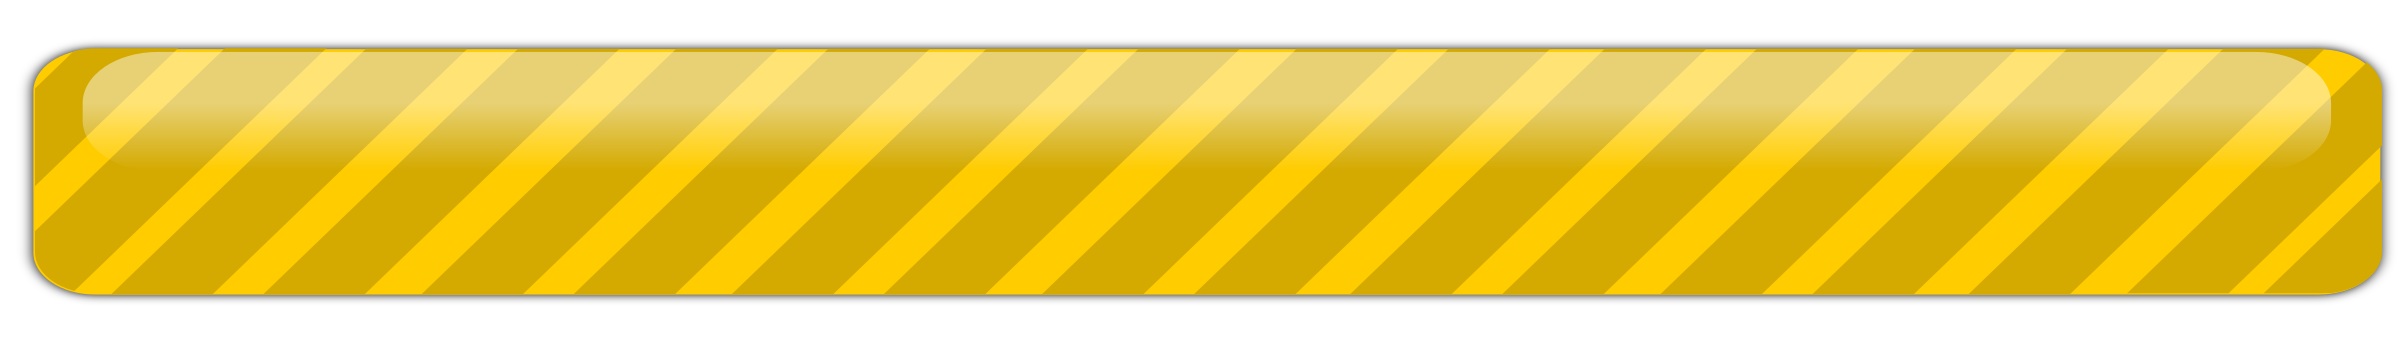 yellow bar png